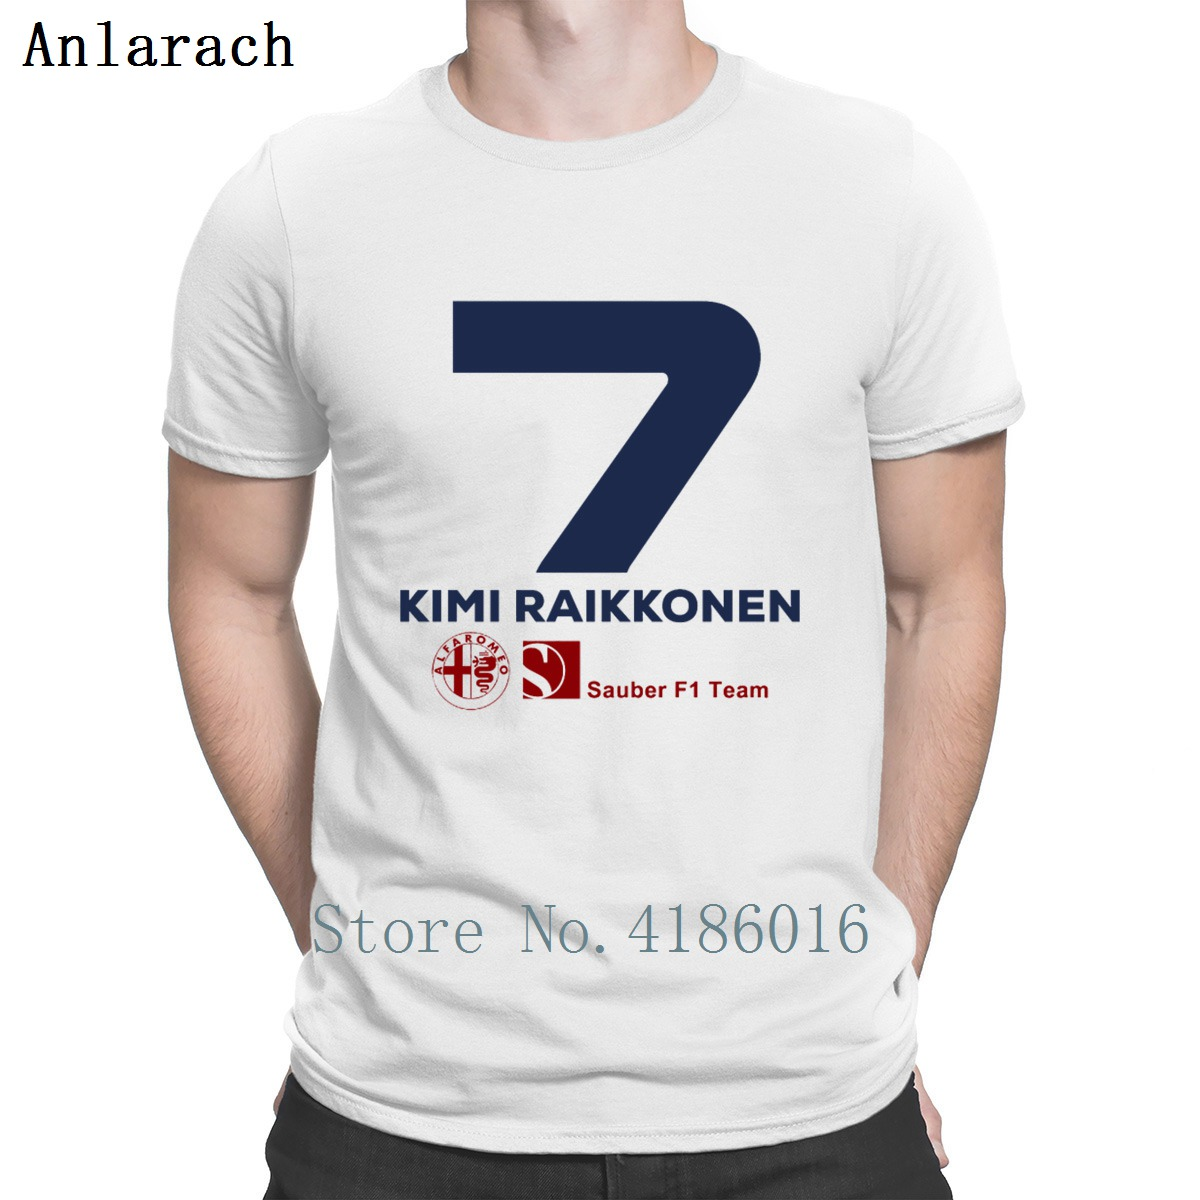 Kimi Raikkonen Sauber F1 2019   T     Shirt   Quirky Personality Streetwear Leisure Hip Hop Summer Style Mens Fashion Humor Fit